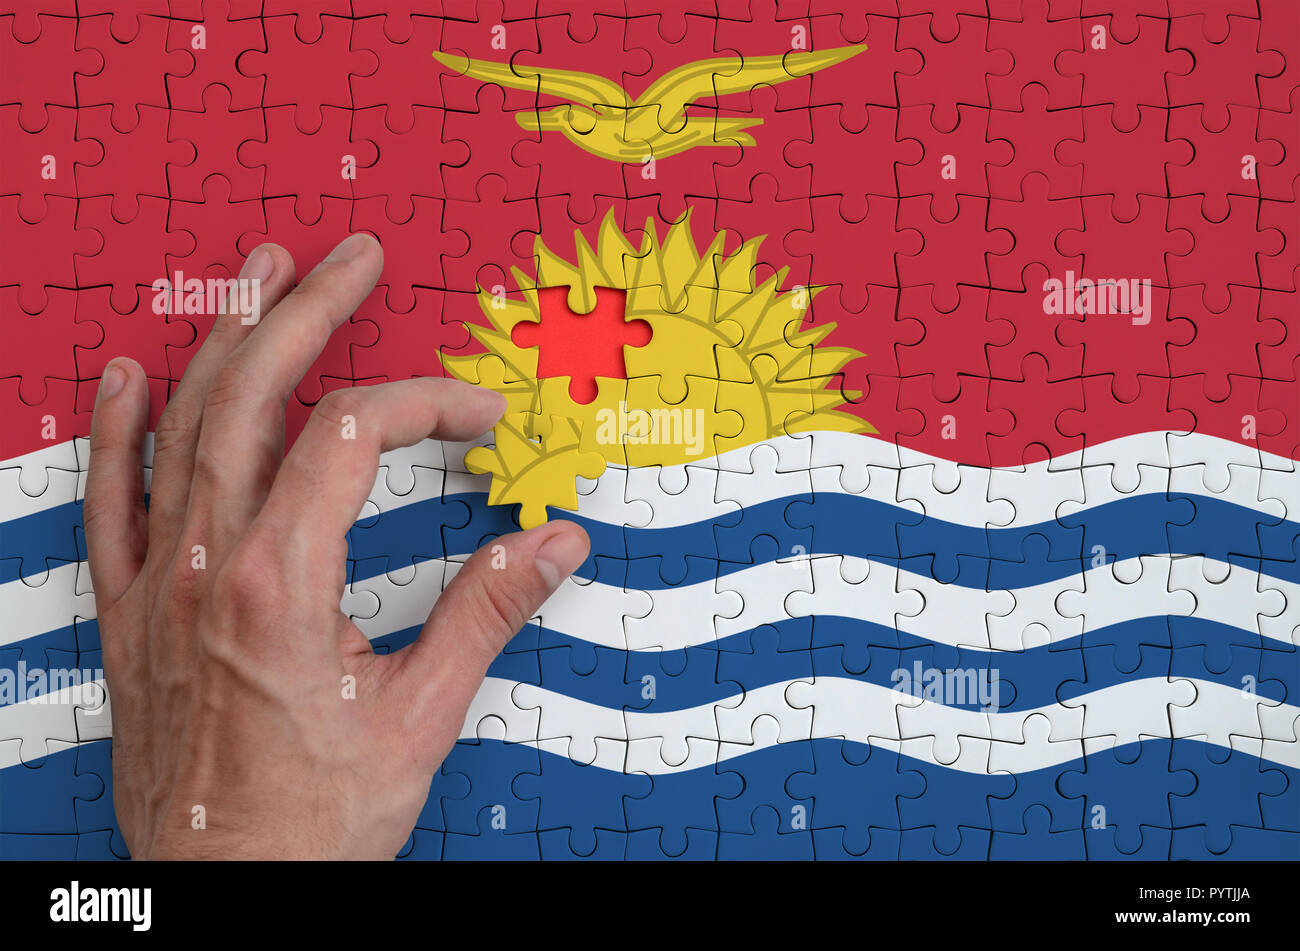 Kiribati flag  is depicted on a puzzle, which the man's hand completes to fold. - Stock Image